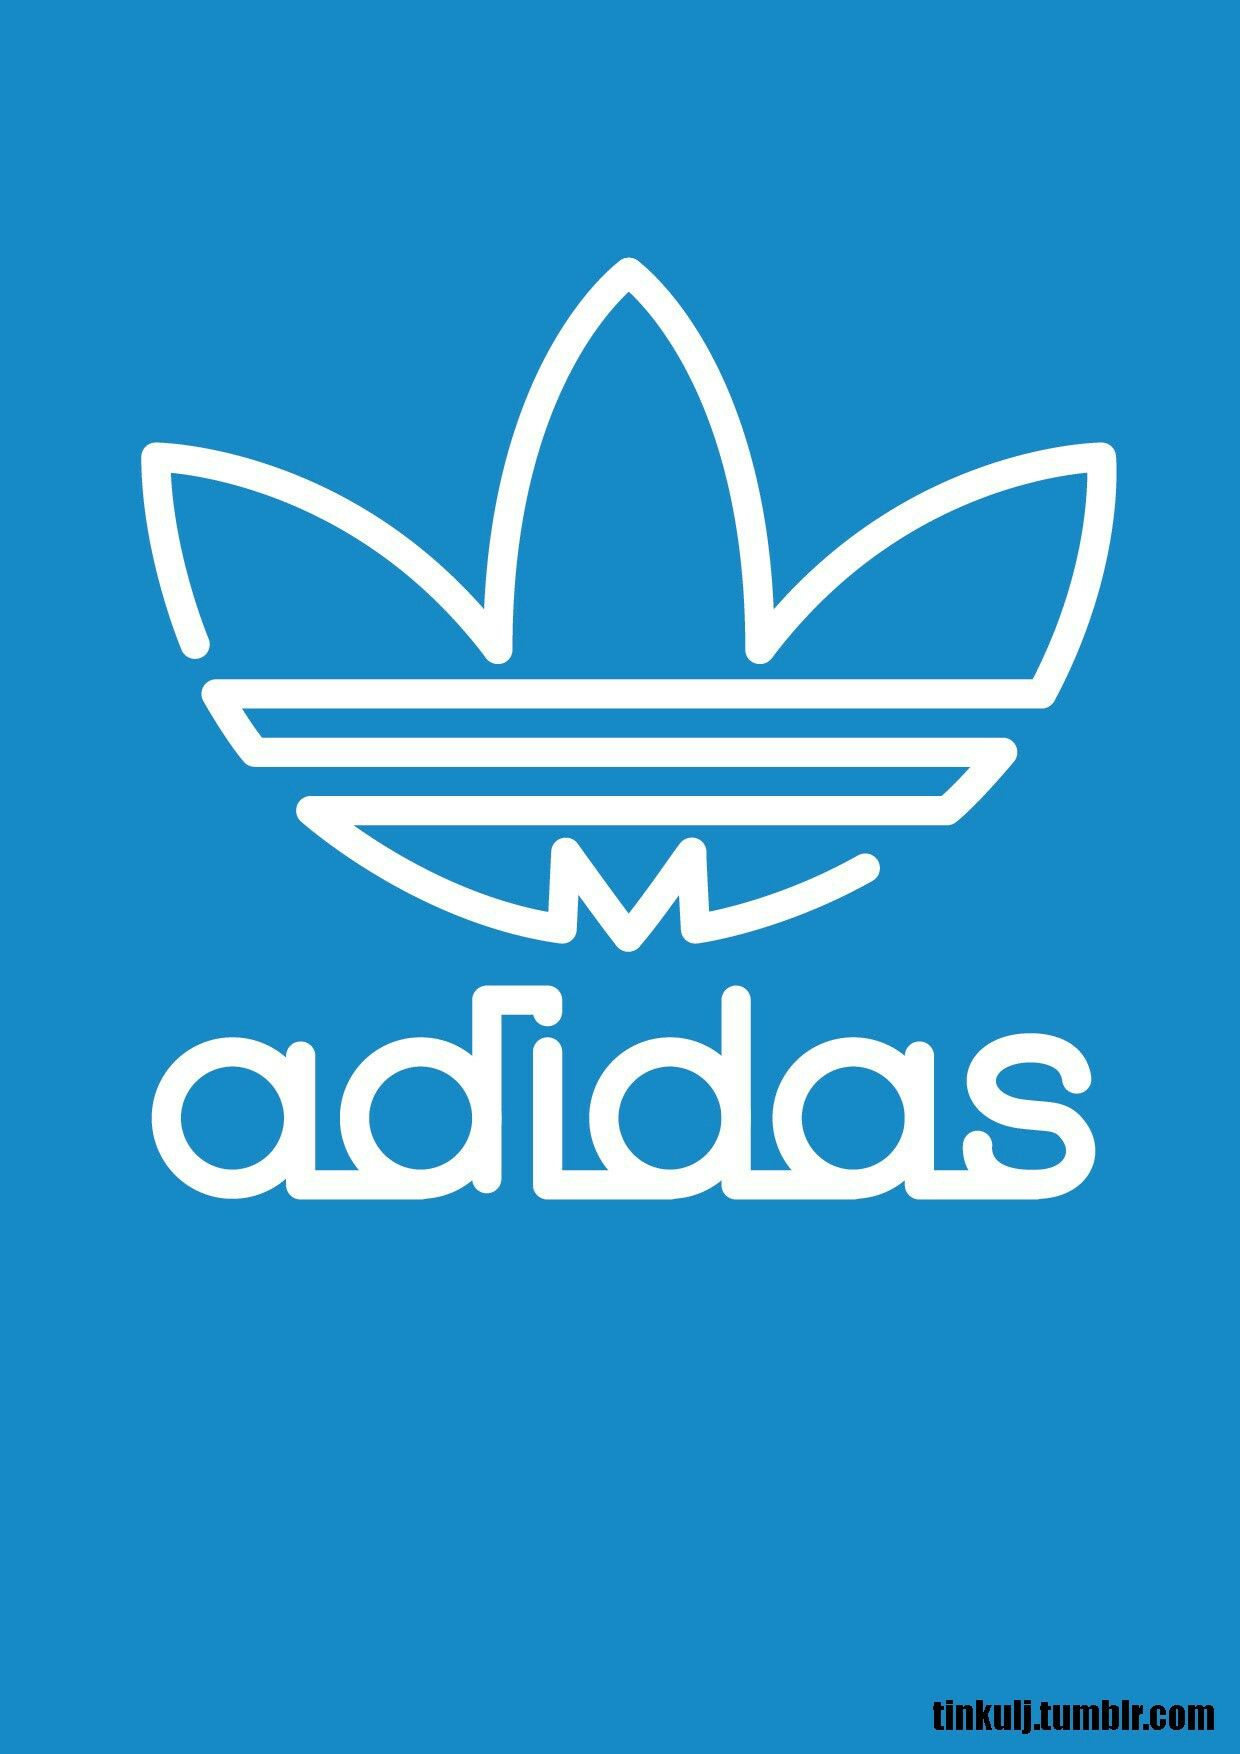 Pin By Alan On Bm Y Iphone Wallpaper Adidas Wallpaper